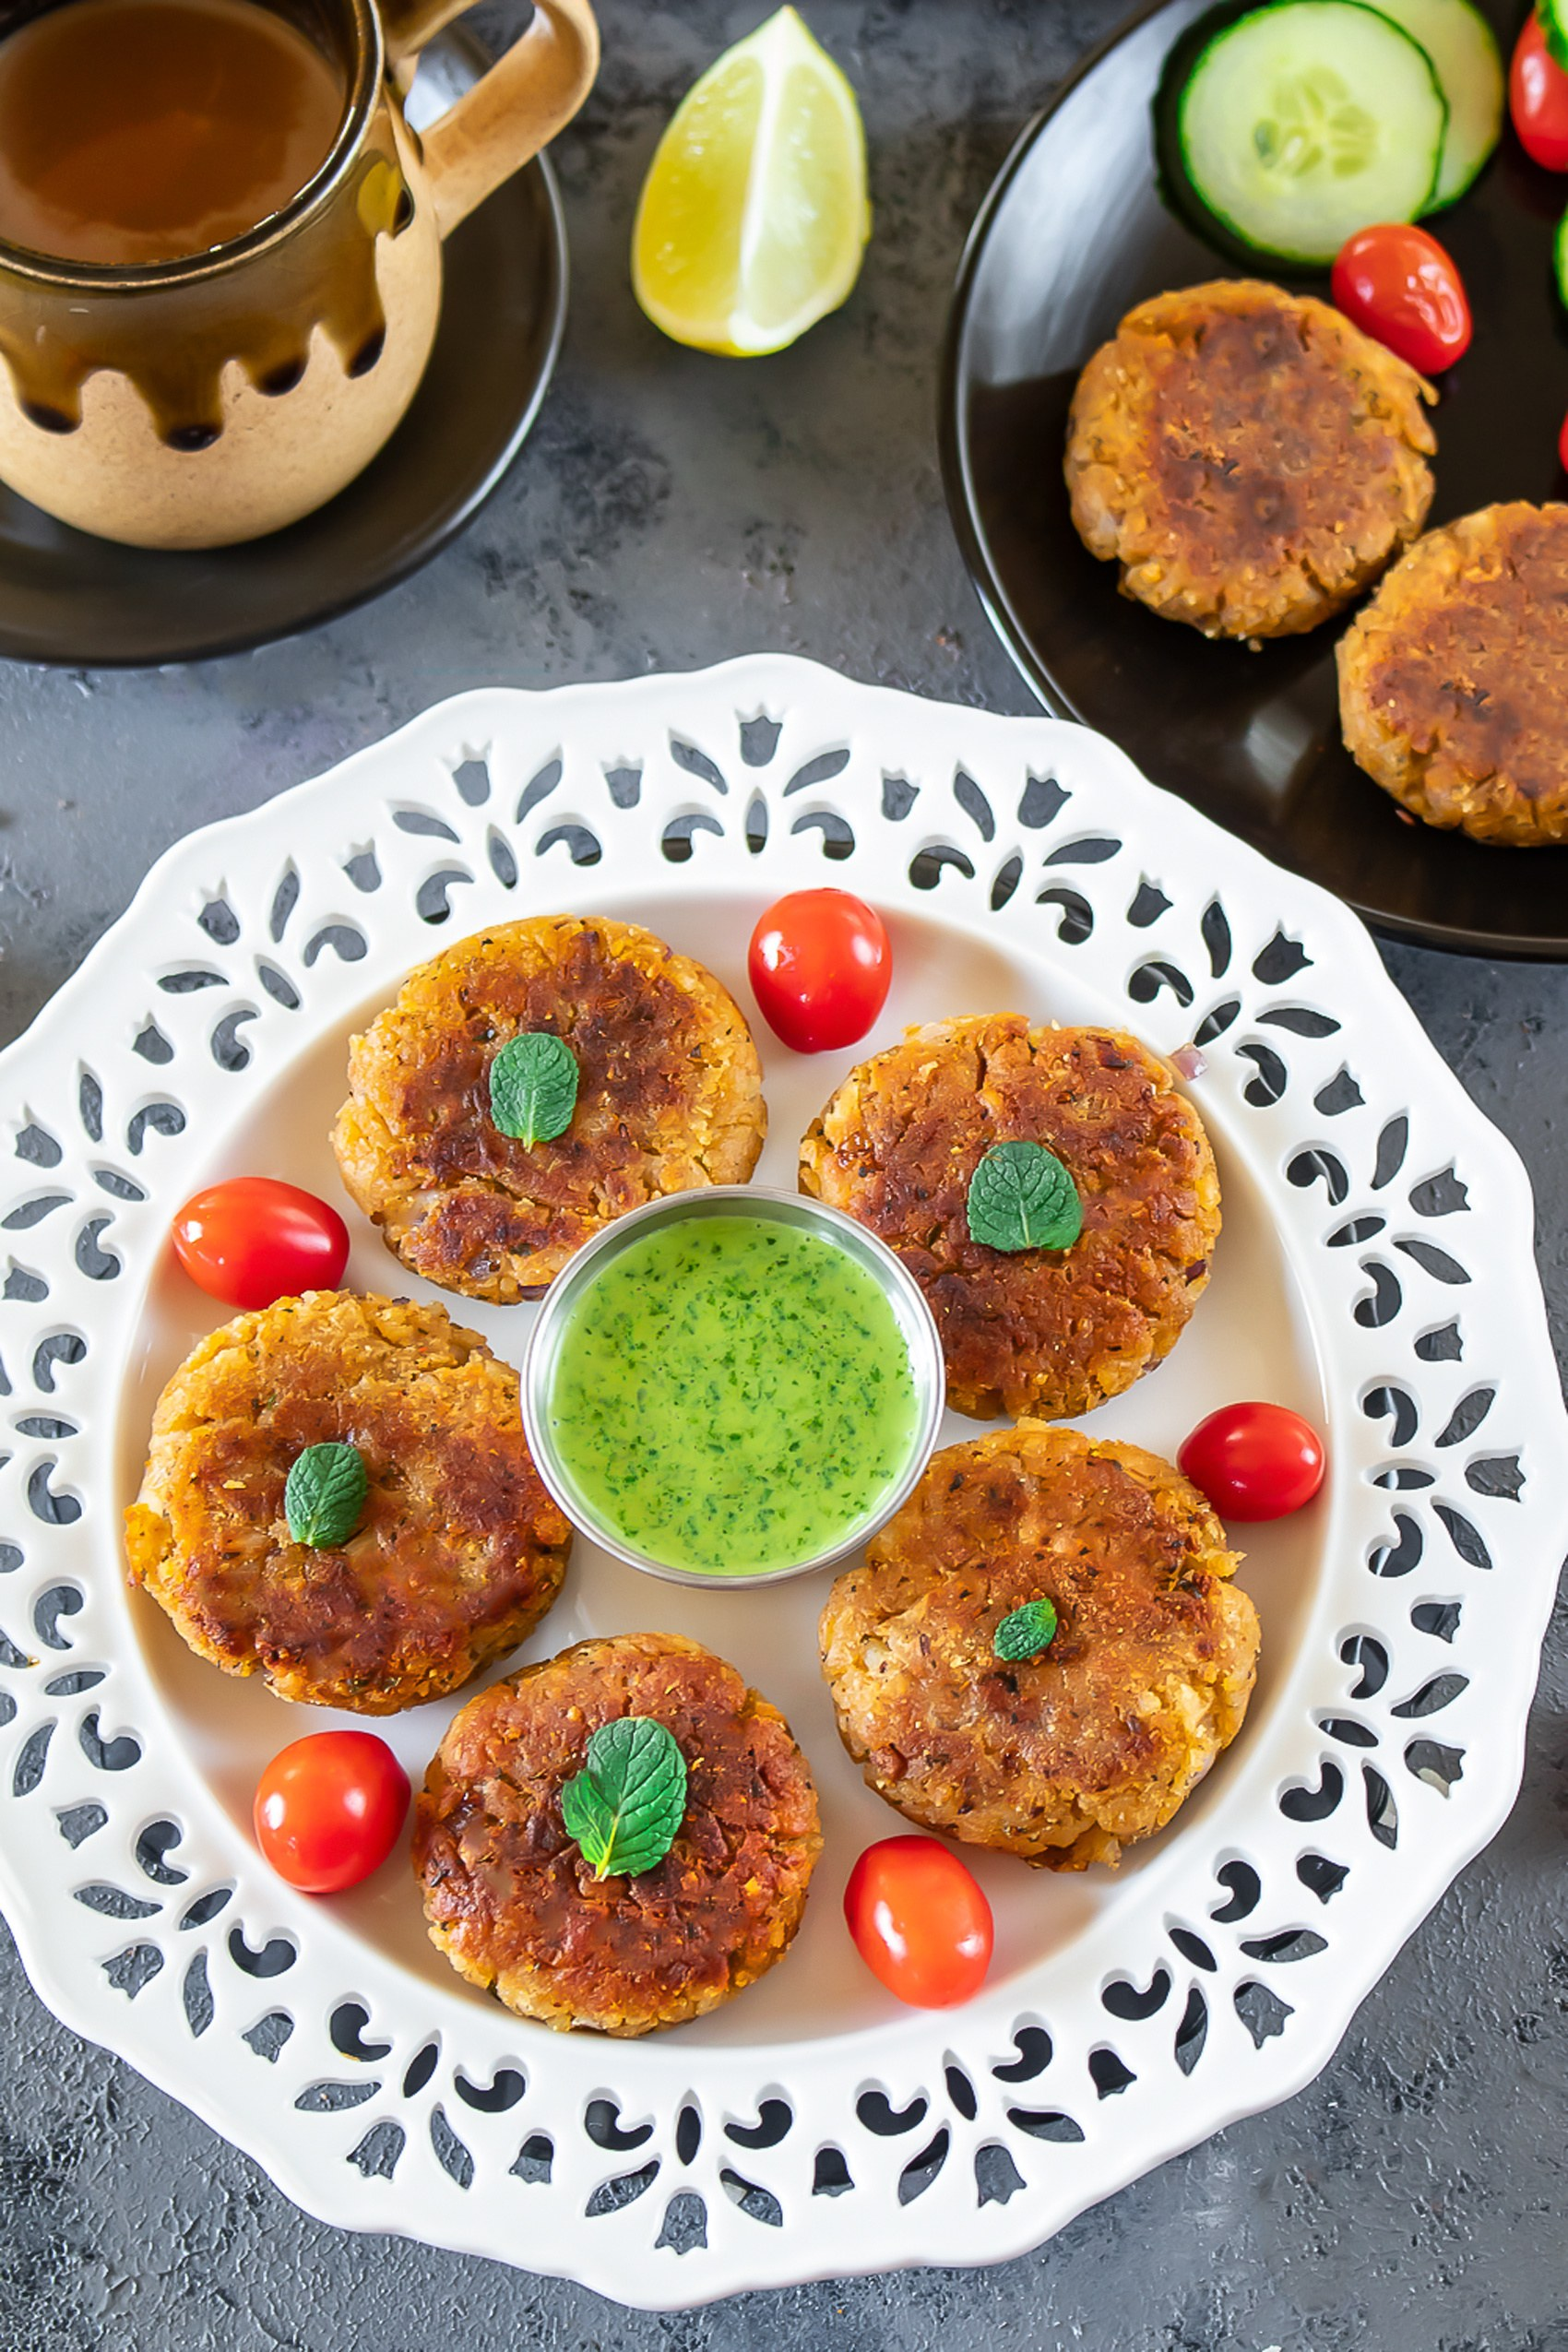 Oats and poha cutlets in a plate withtomatoes